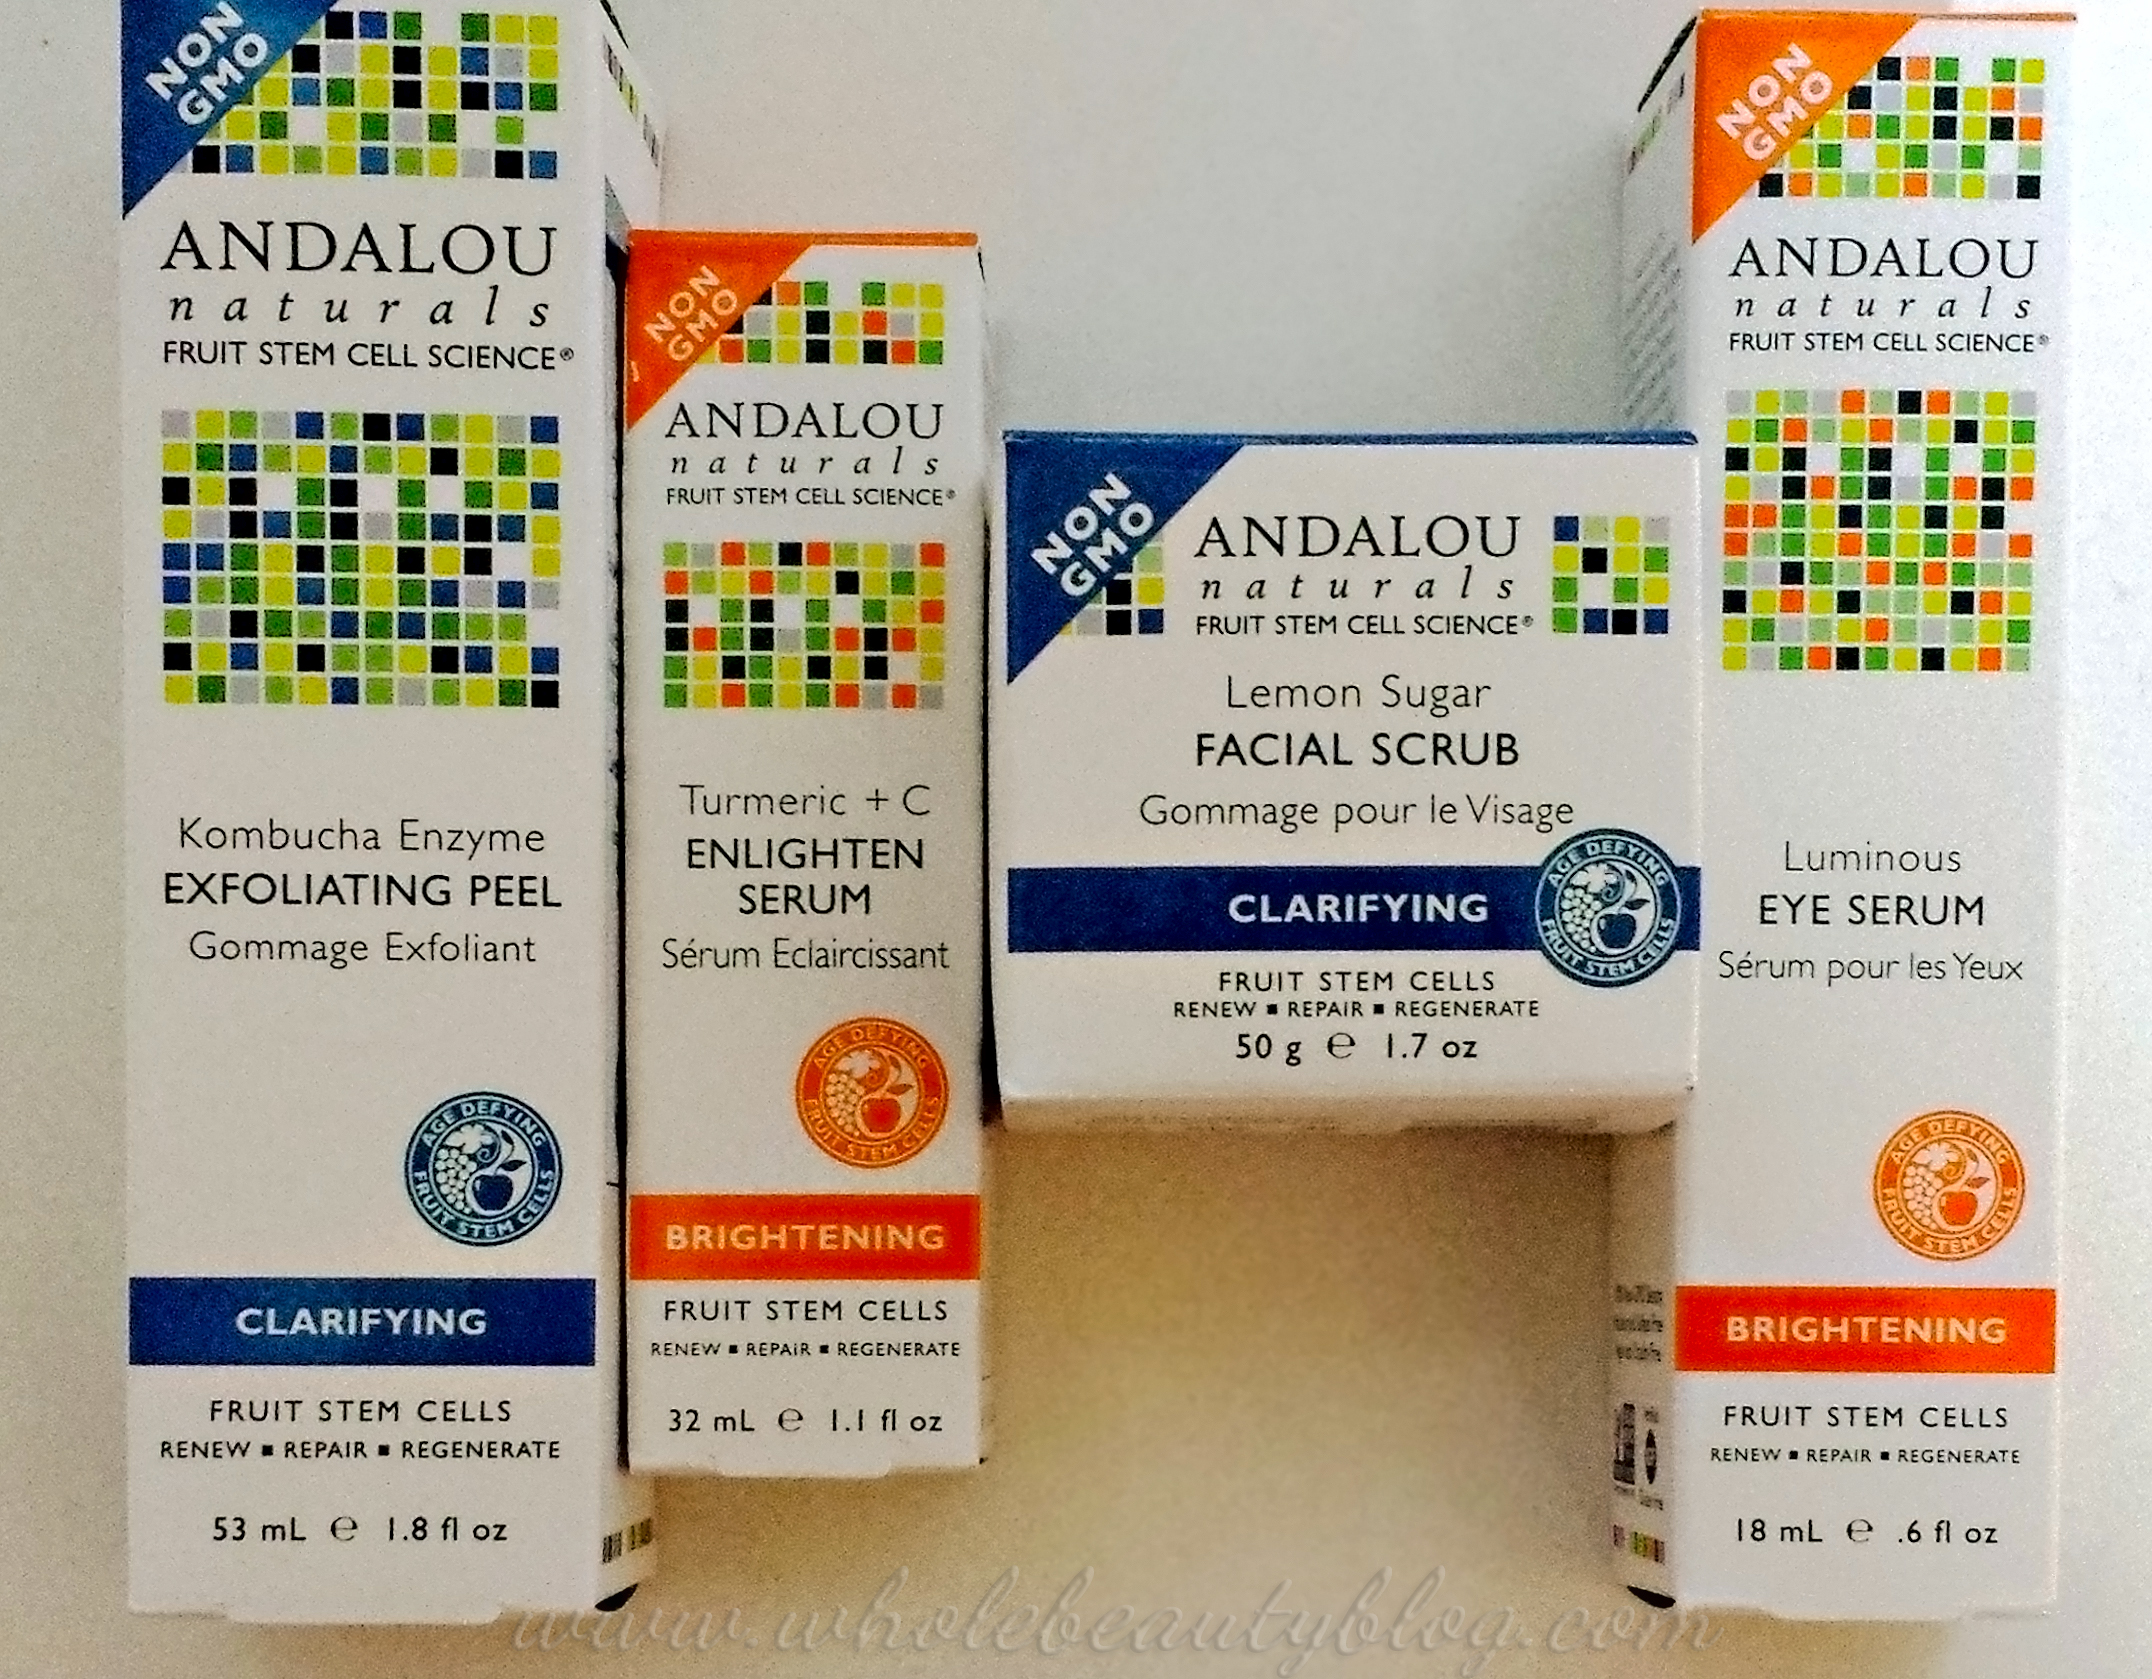 andalou naturals product review by delectably different kitchen